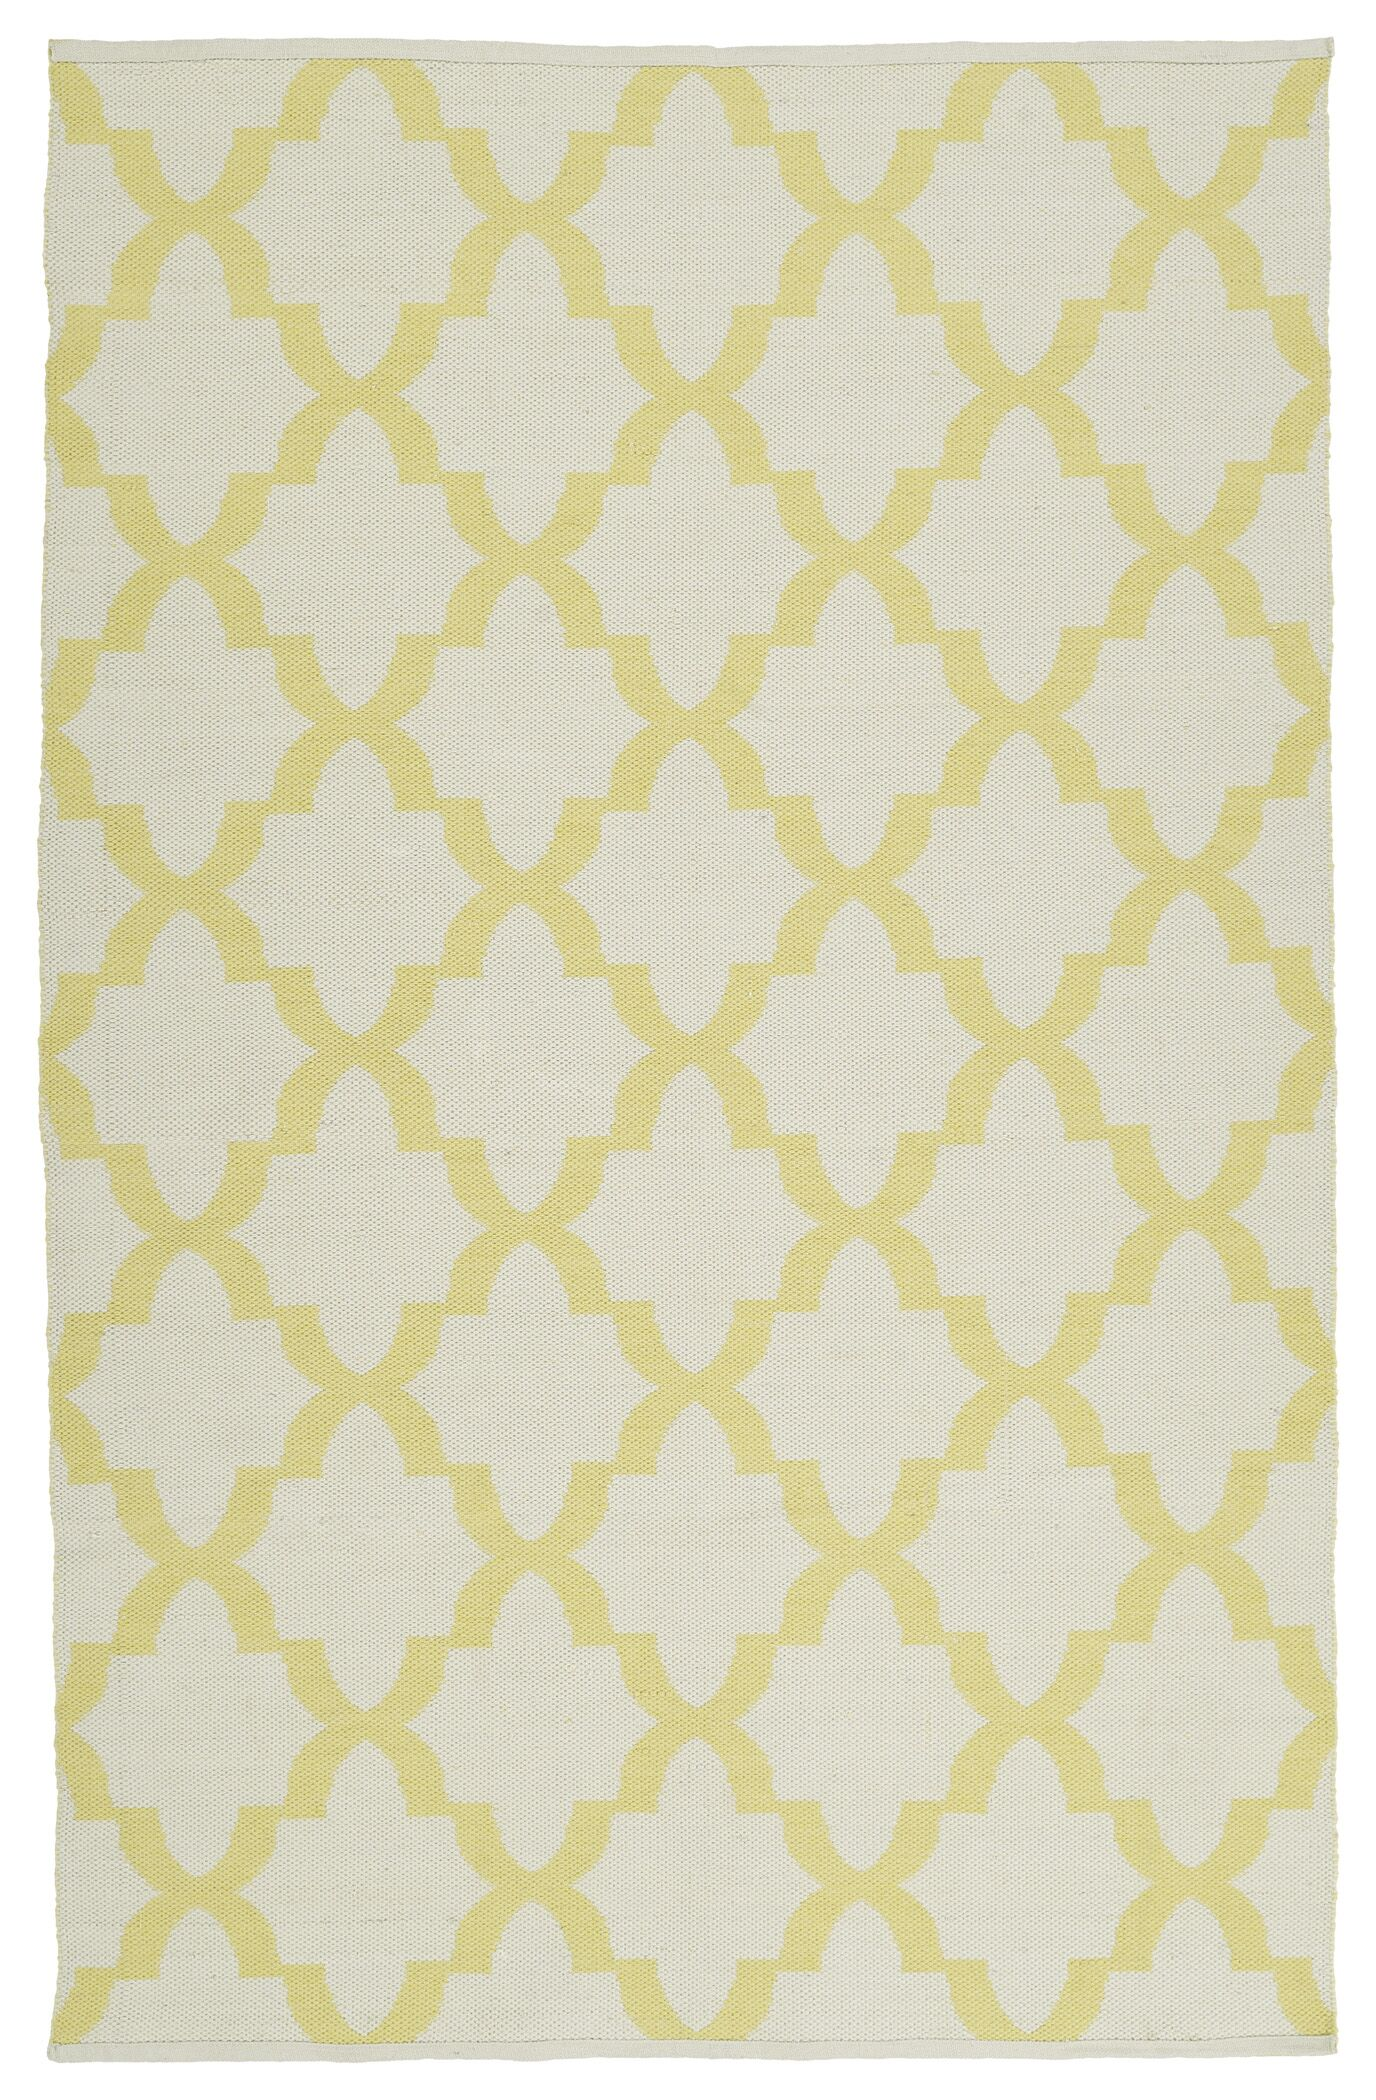 Dominic Yellow/White Indoor/Outdoor Area Rug Rug Size: Rectangle 9' x 12'